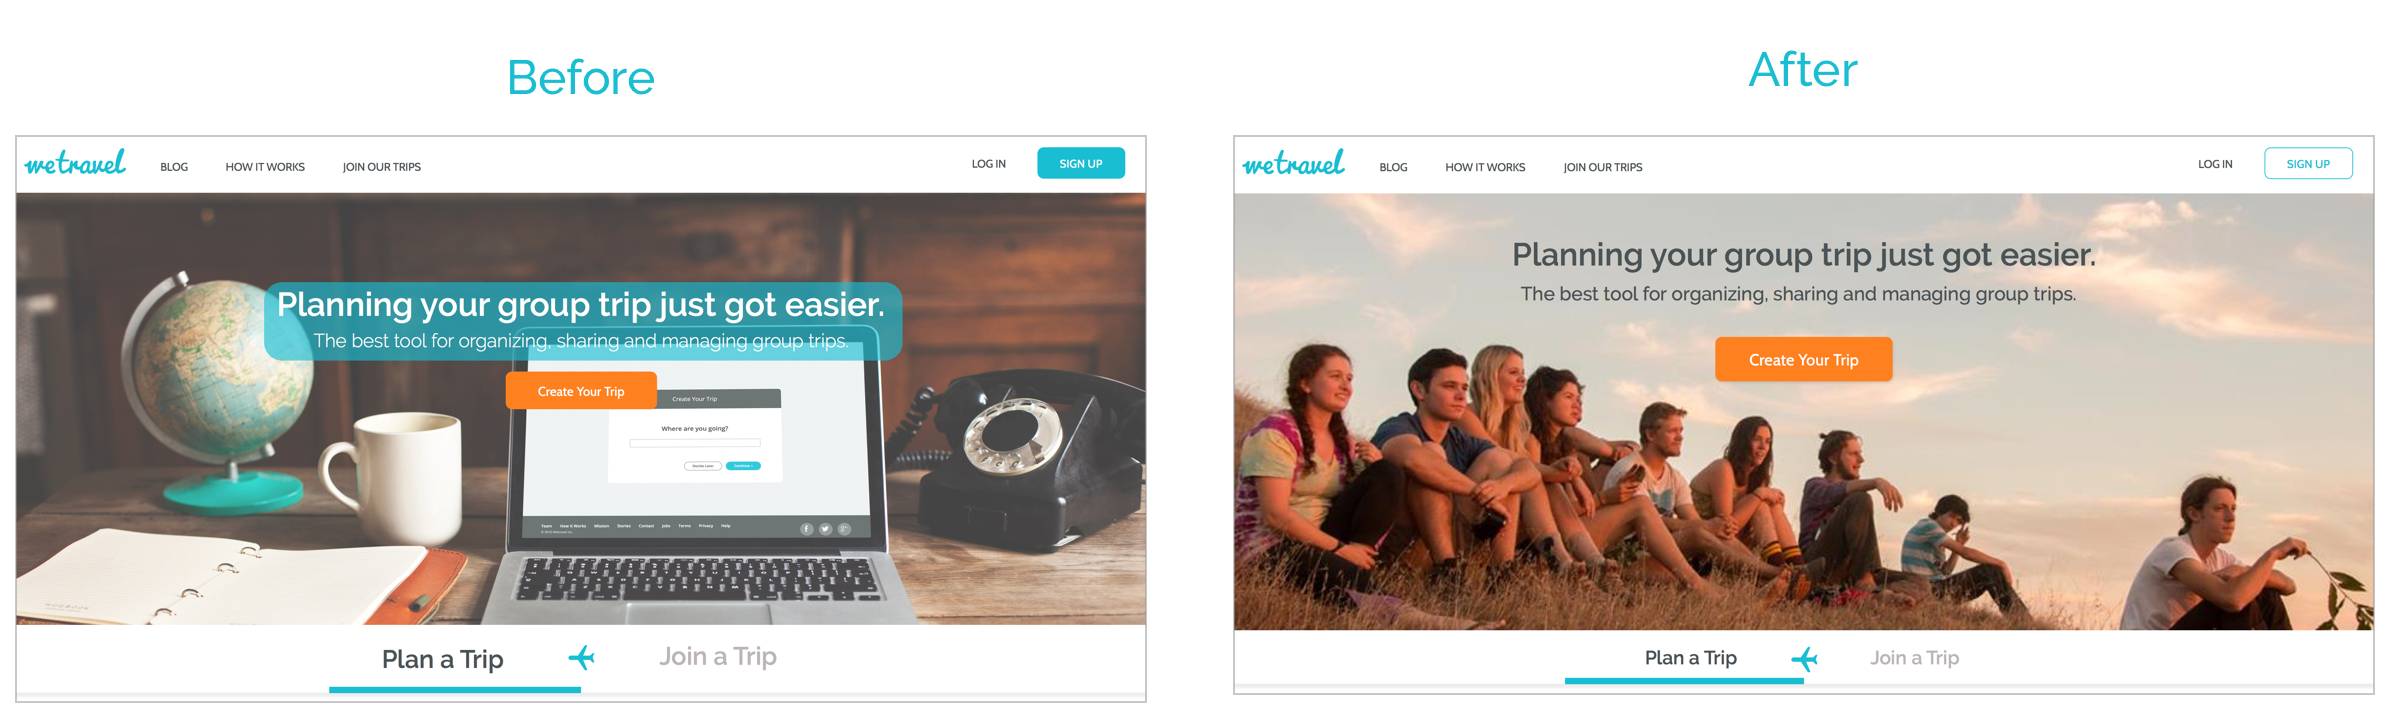 Landing page imagery before and after